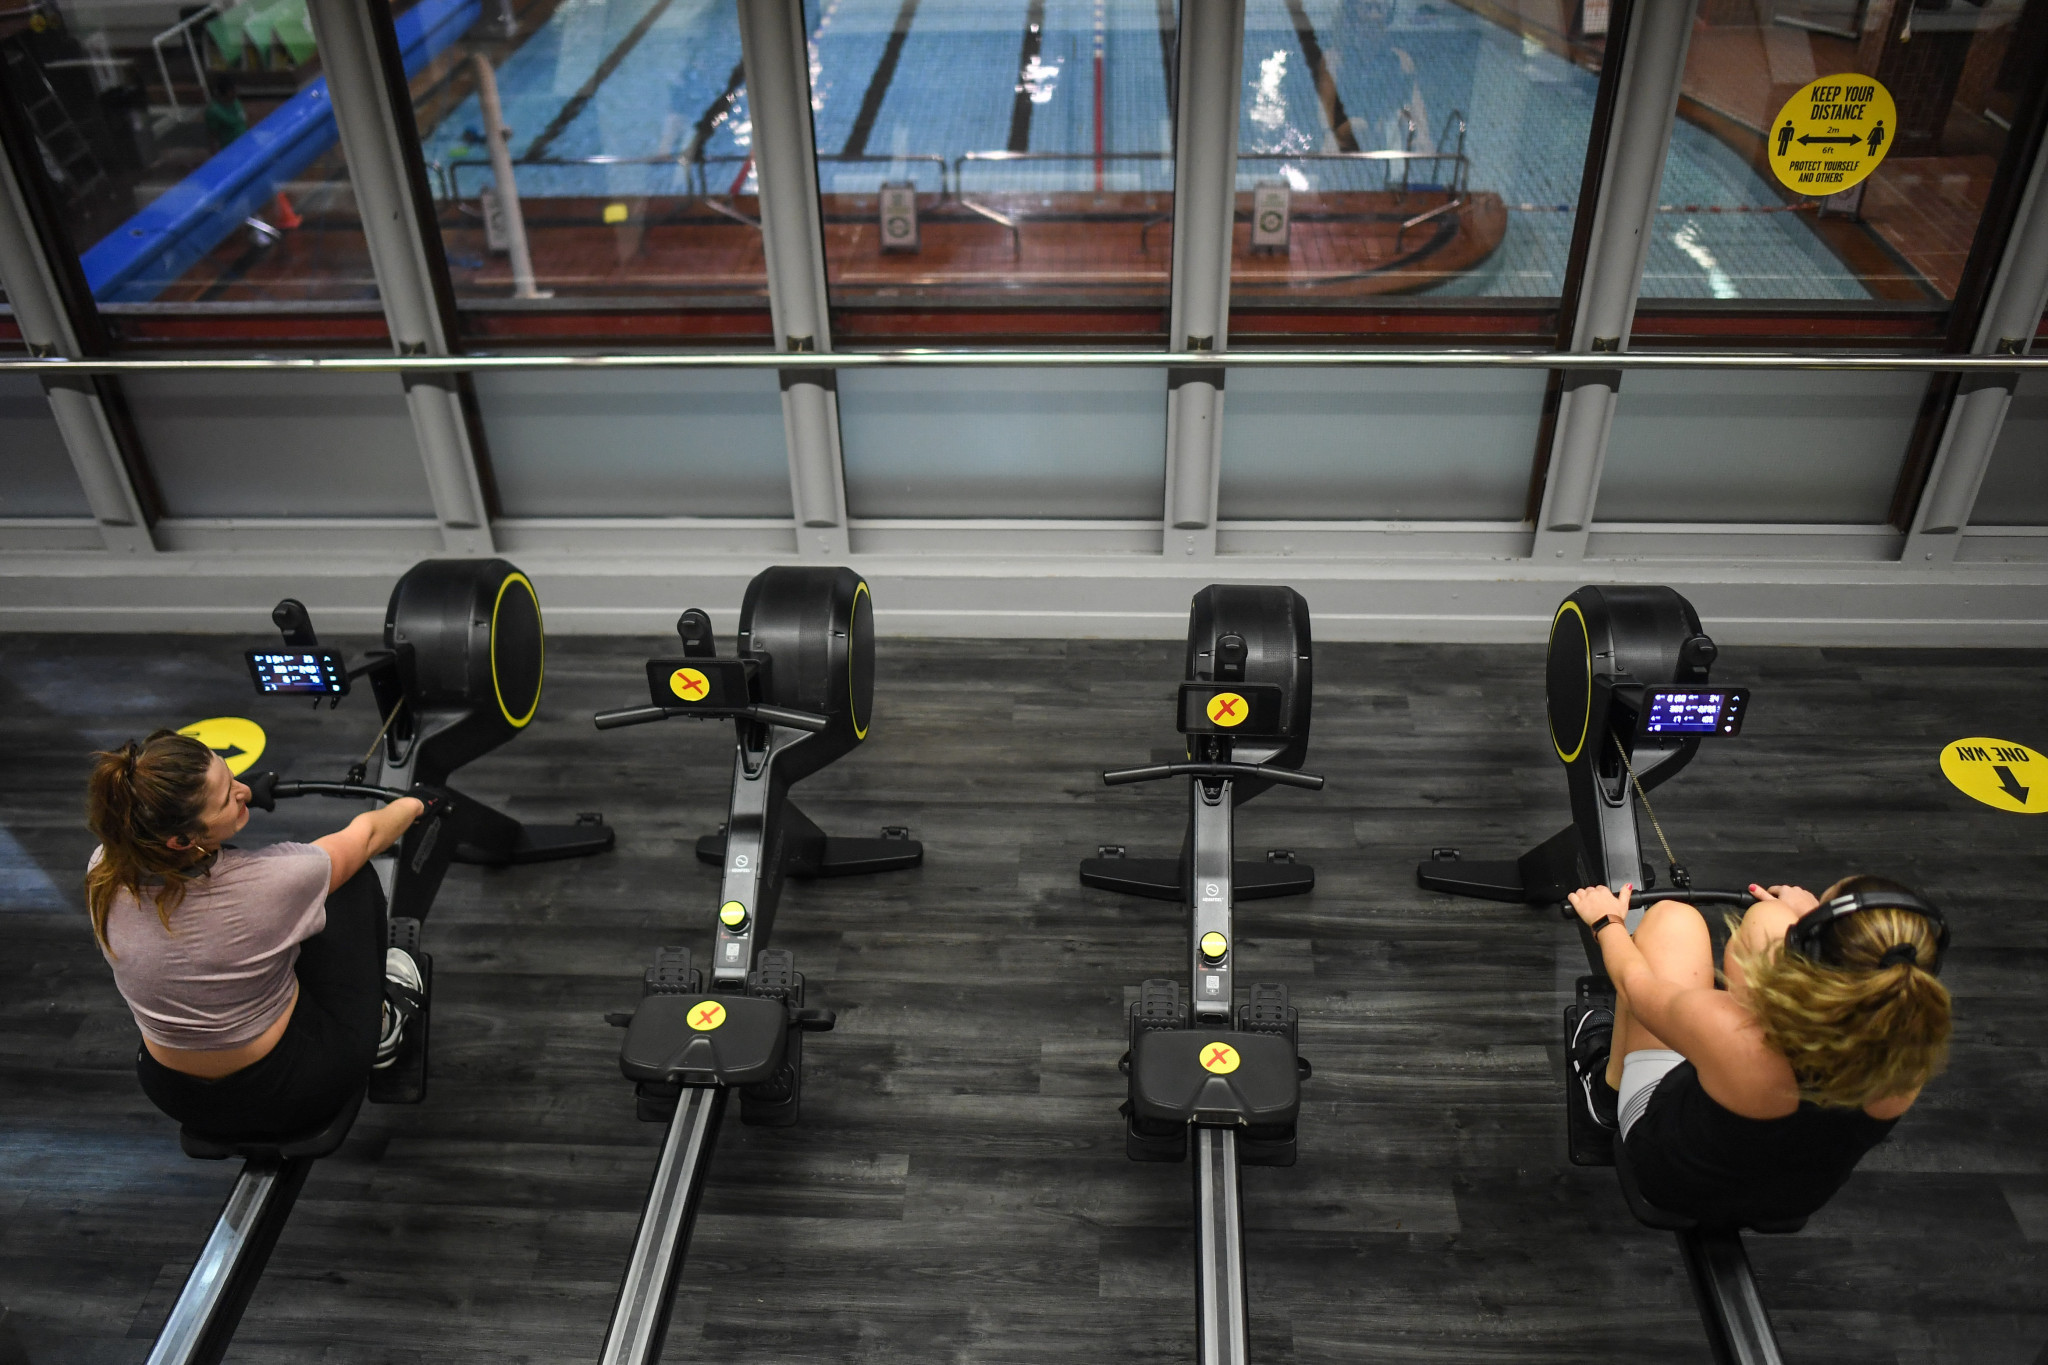 World Records set on day one of World Rowing Indoor Championships